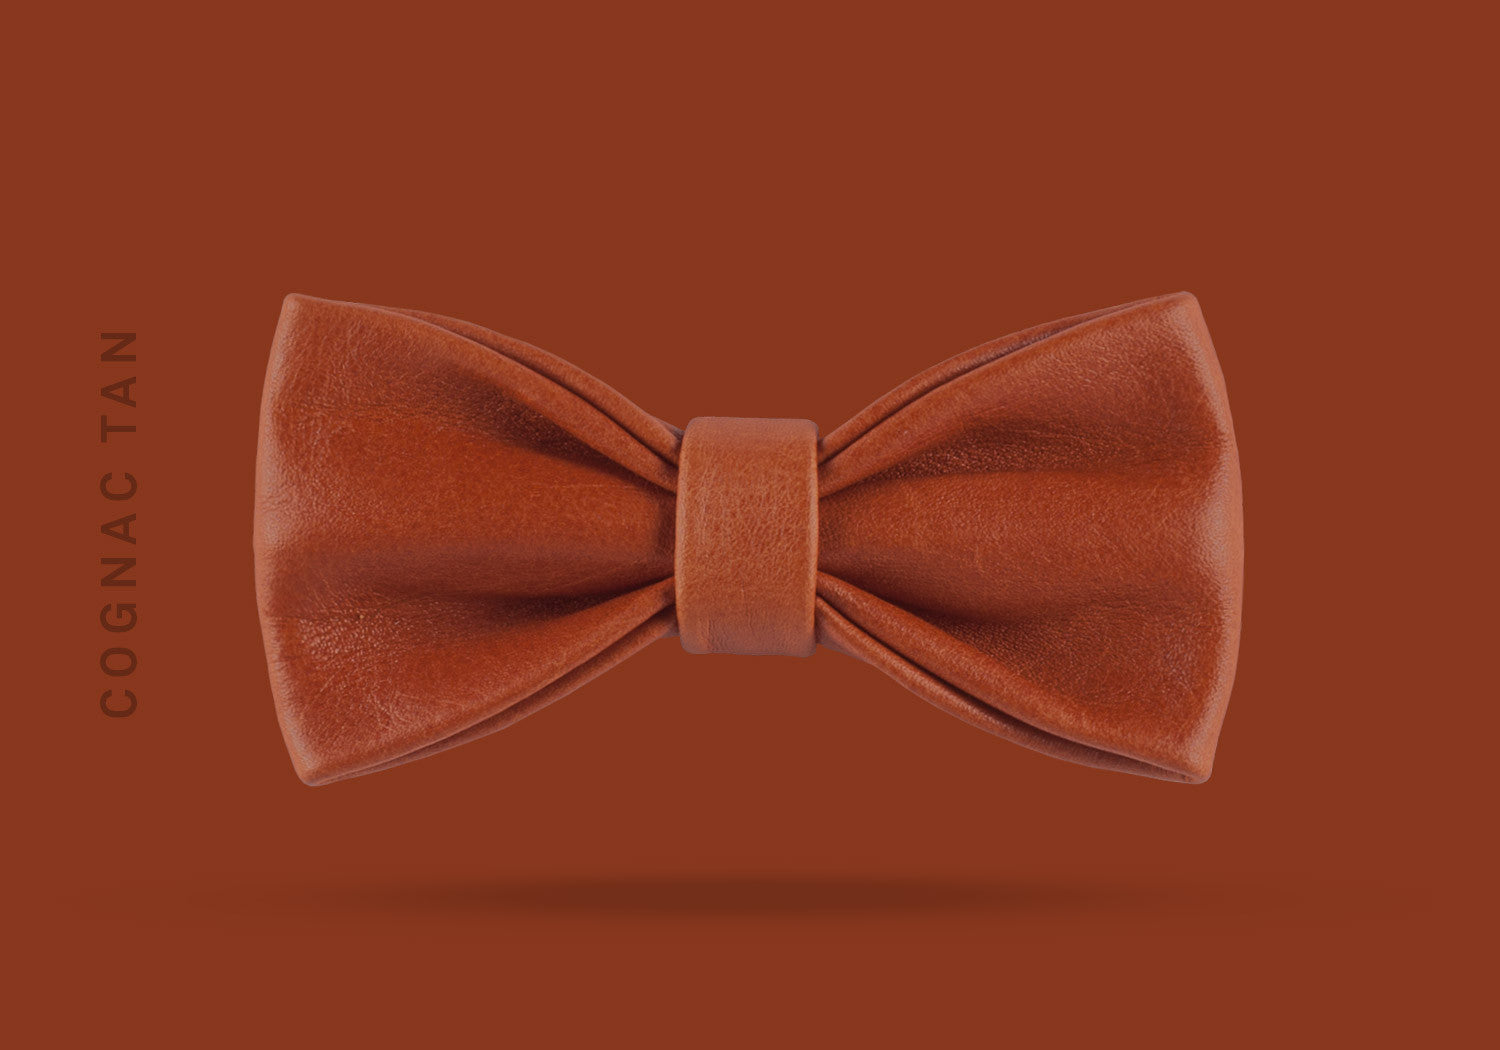 This cognac tan WEEF handmade leather bow is a great present or gift idea for dapper and stylish gentlemen for fathers day, valentines day or Christmas.